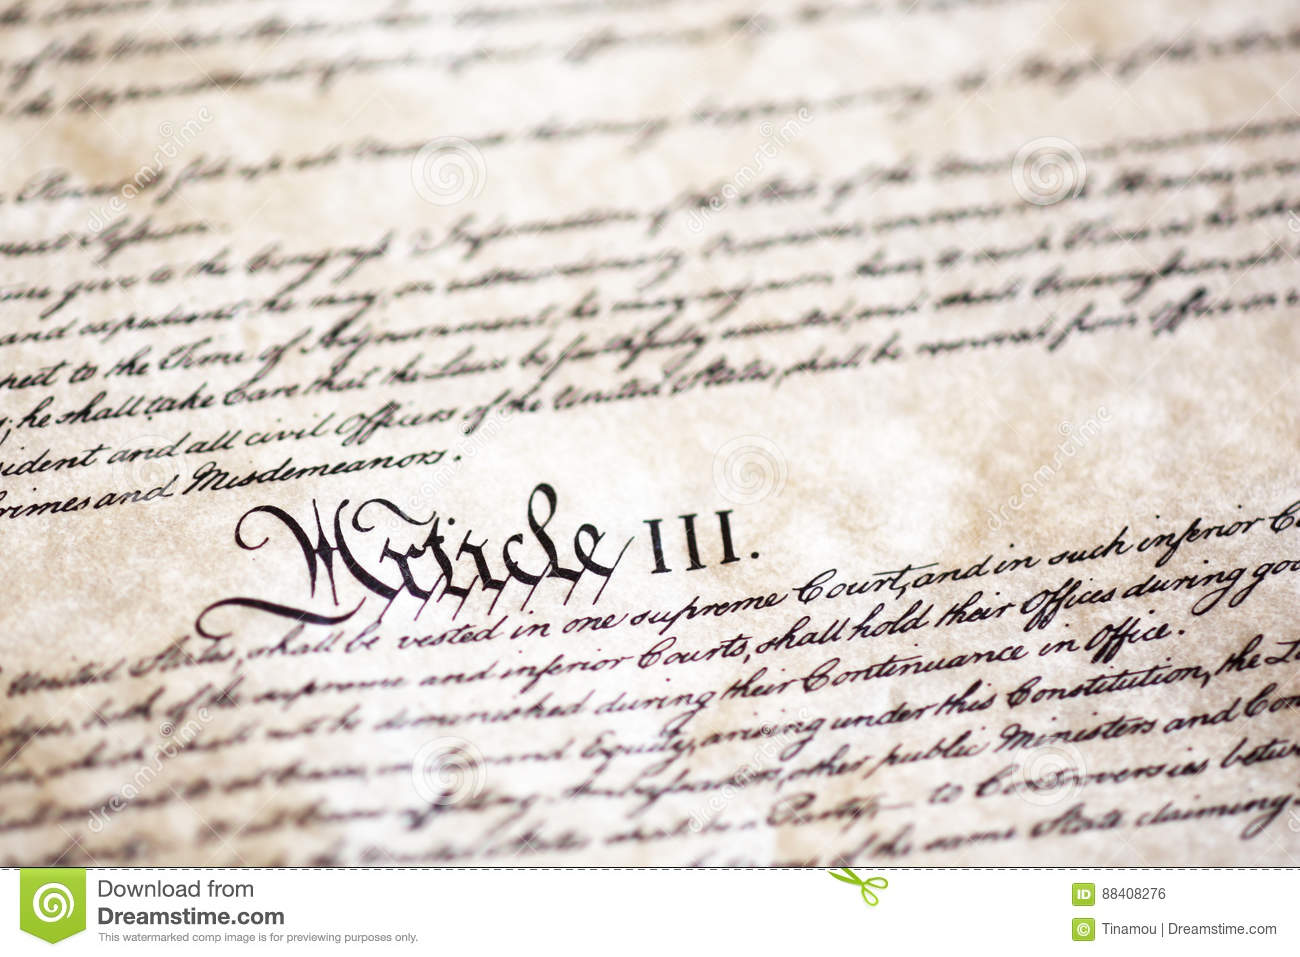 Detail from United States Constitution